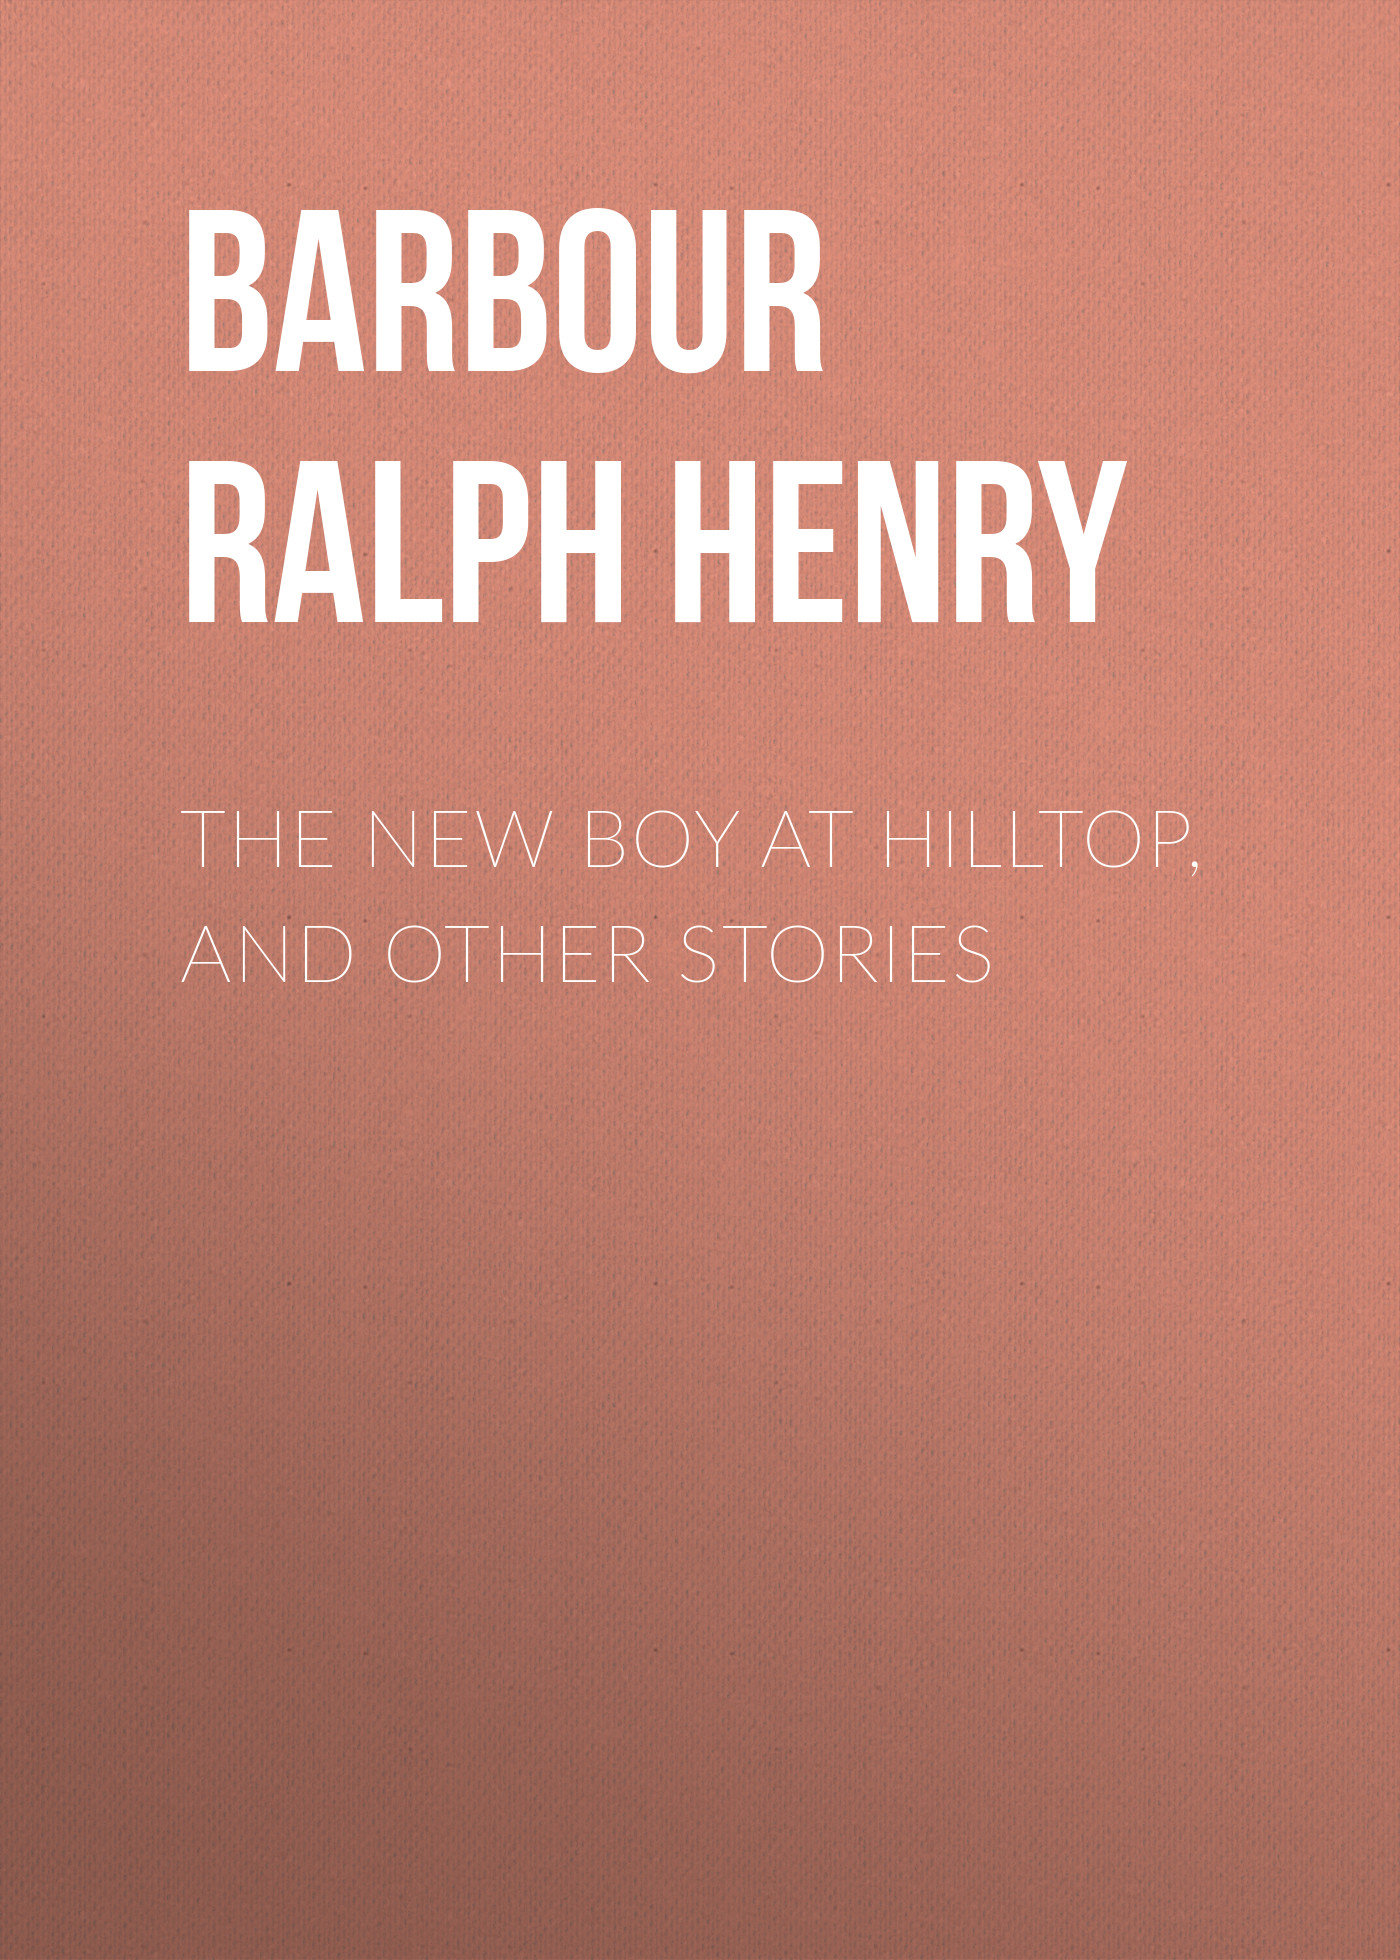 Barbour Ralph Henry The New Boy at Hilltop, and Other Stories